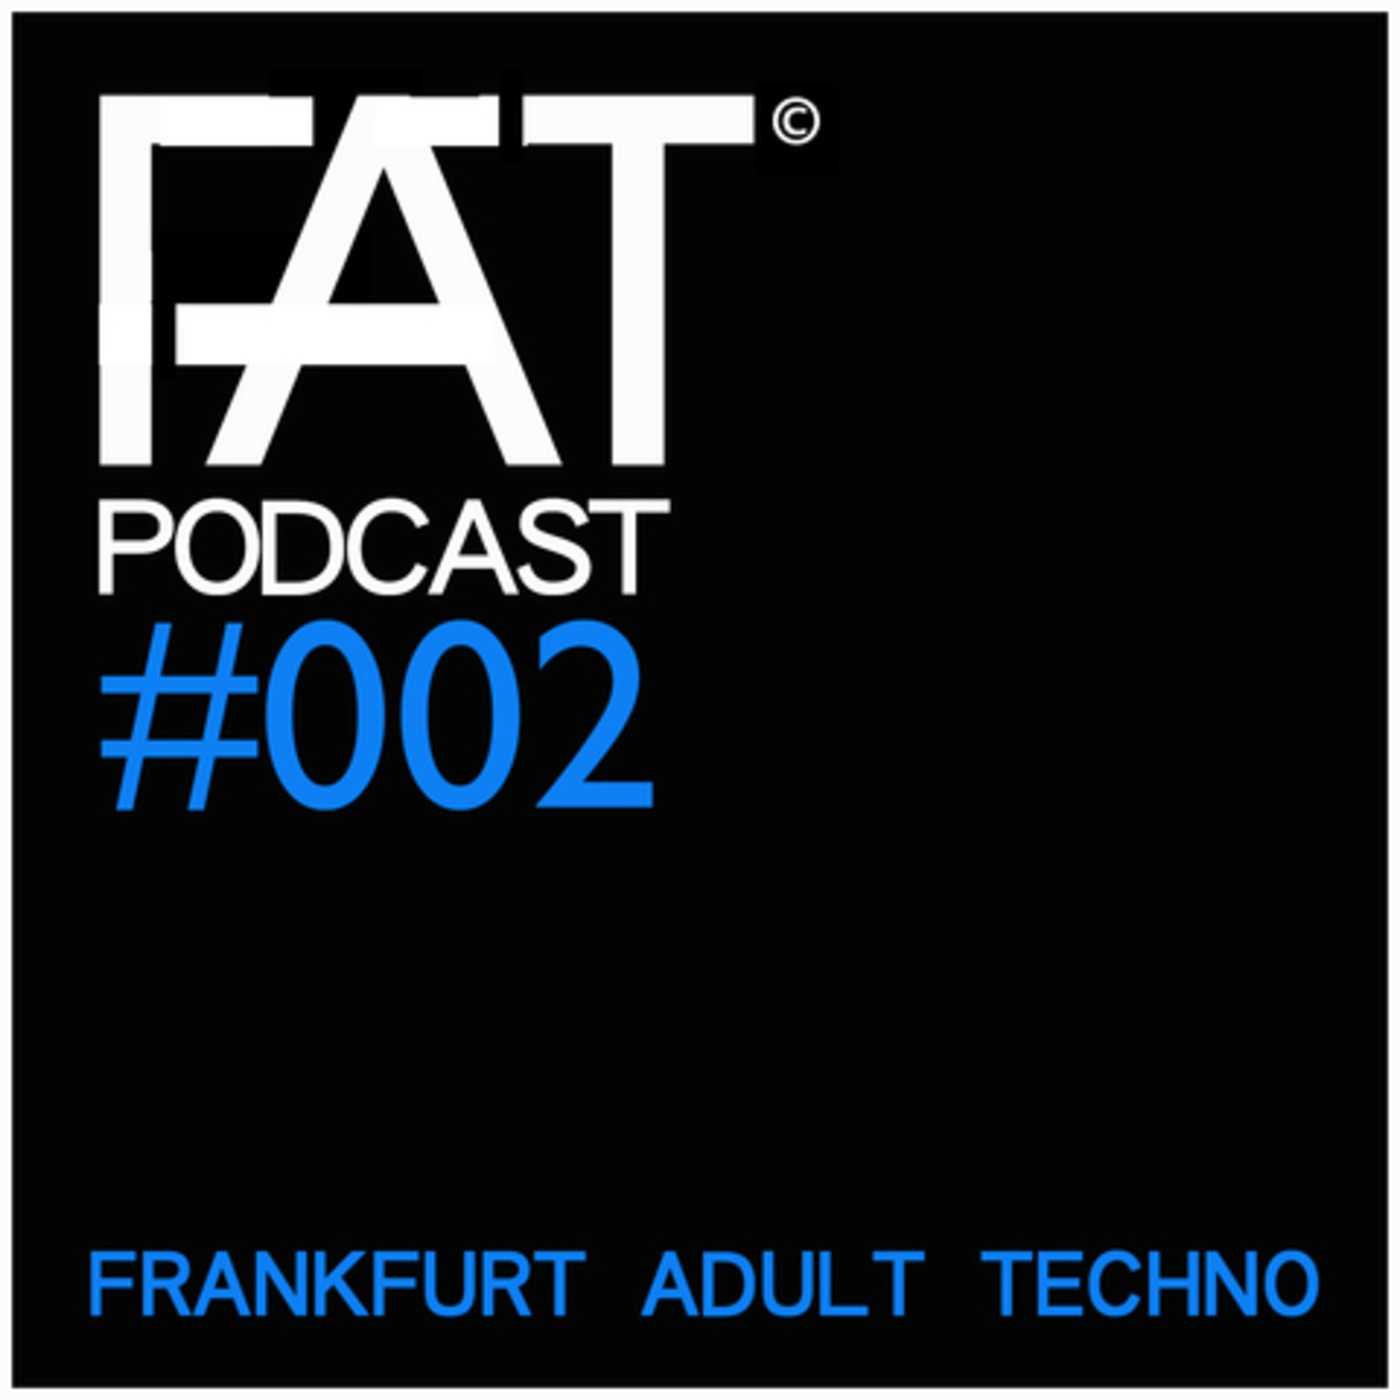 FAT Podcast 002 with Frank Savio